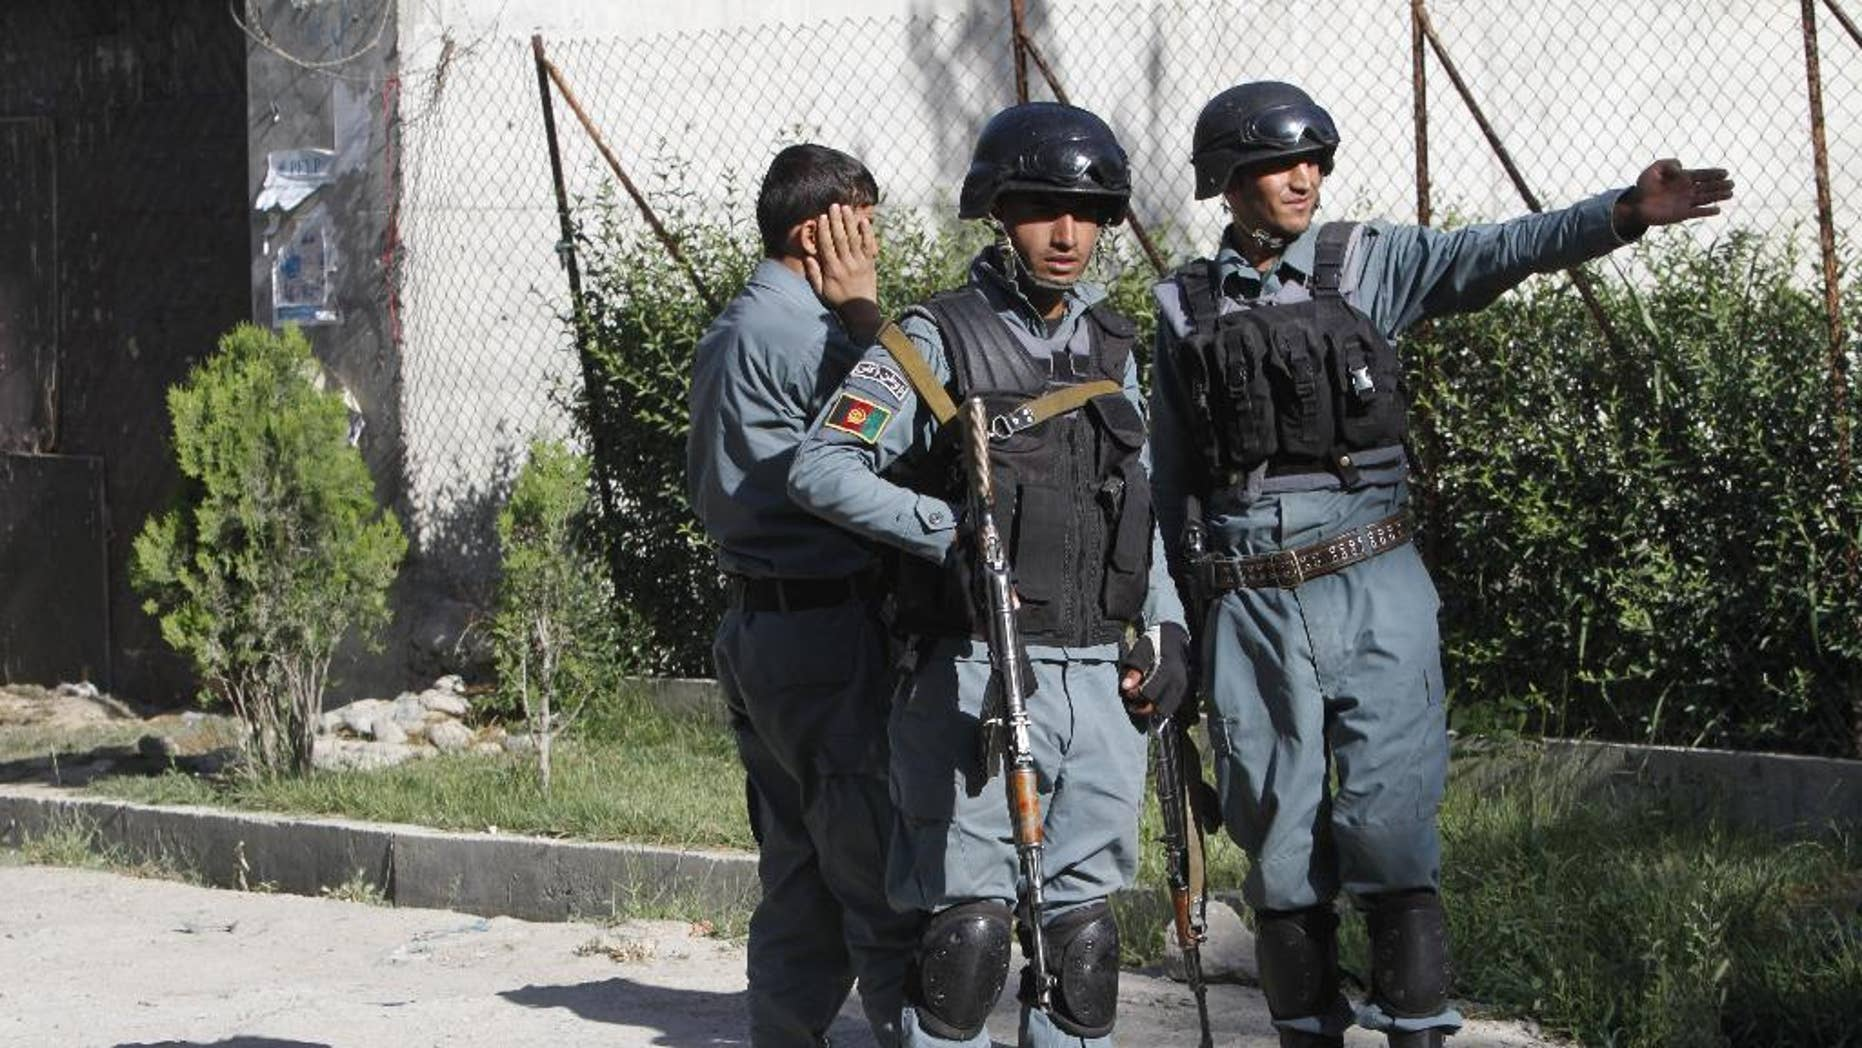 """May 27, 2015: Afghanistan security forces inspect the site of attack in Kabul, Afghanistan. Afghan officials say there are """"no civilian or military casualties"""" following an all-night siege in an upscale neighborhood in the capital Kabul. Taliban attackers targeted a guesthouse in a six-hour assault."""